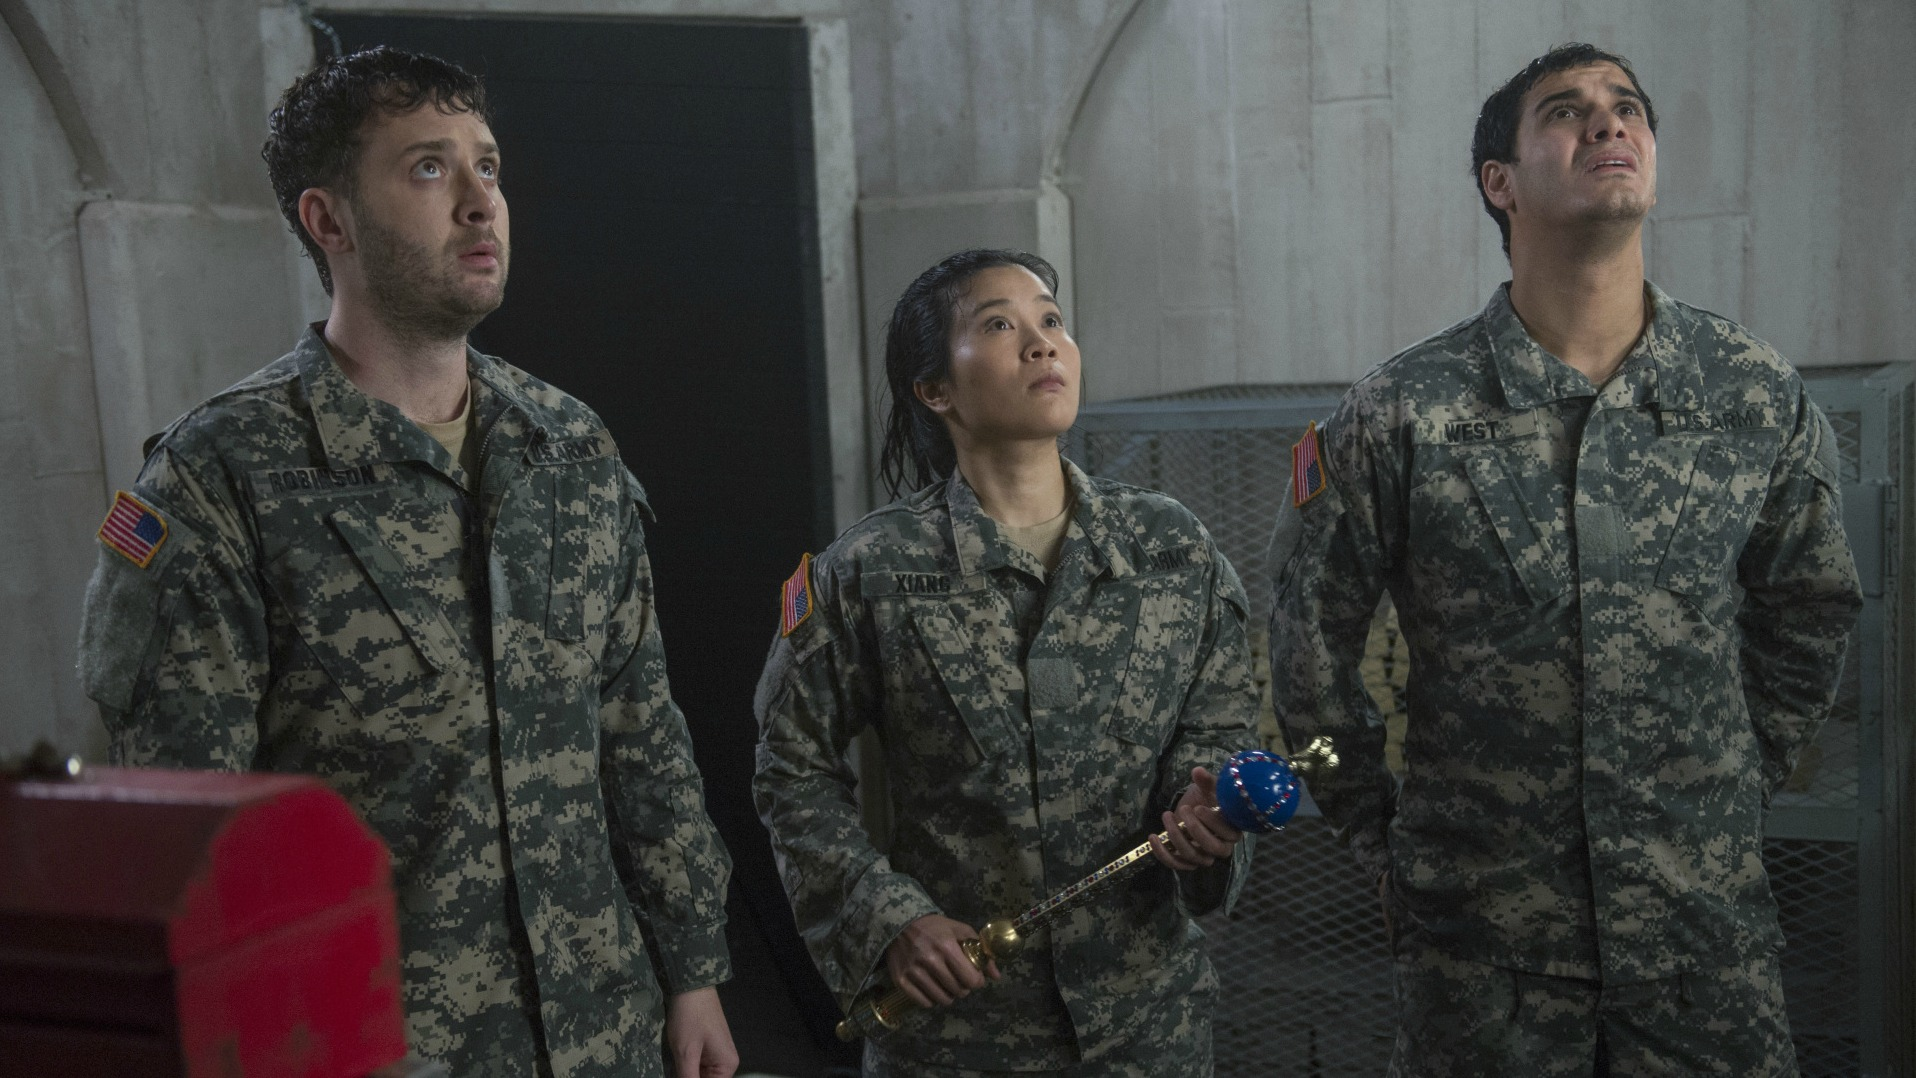 Eddie Kaye Thomas as Toby Curtis, Jadyn Wong as Happy Quinn, and Elyes Gabel as Walter O'Brien